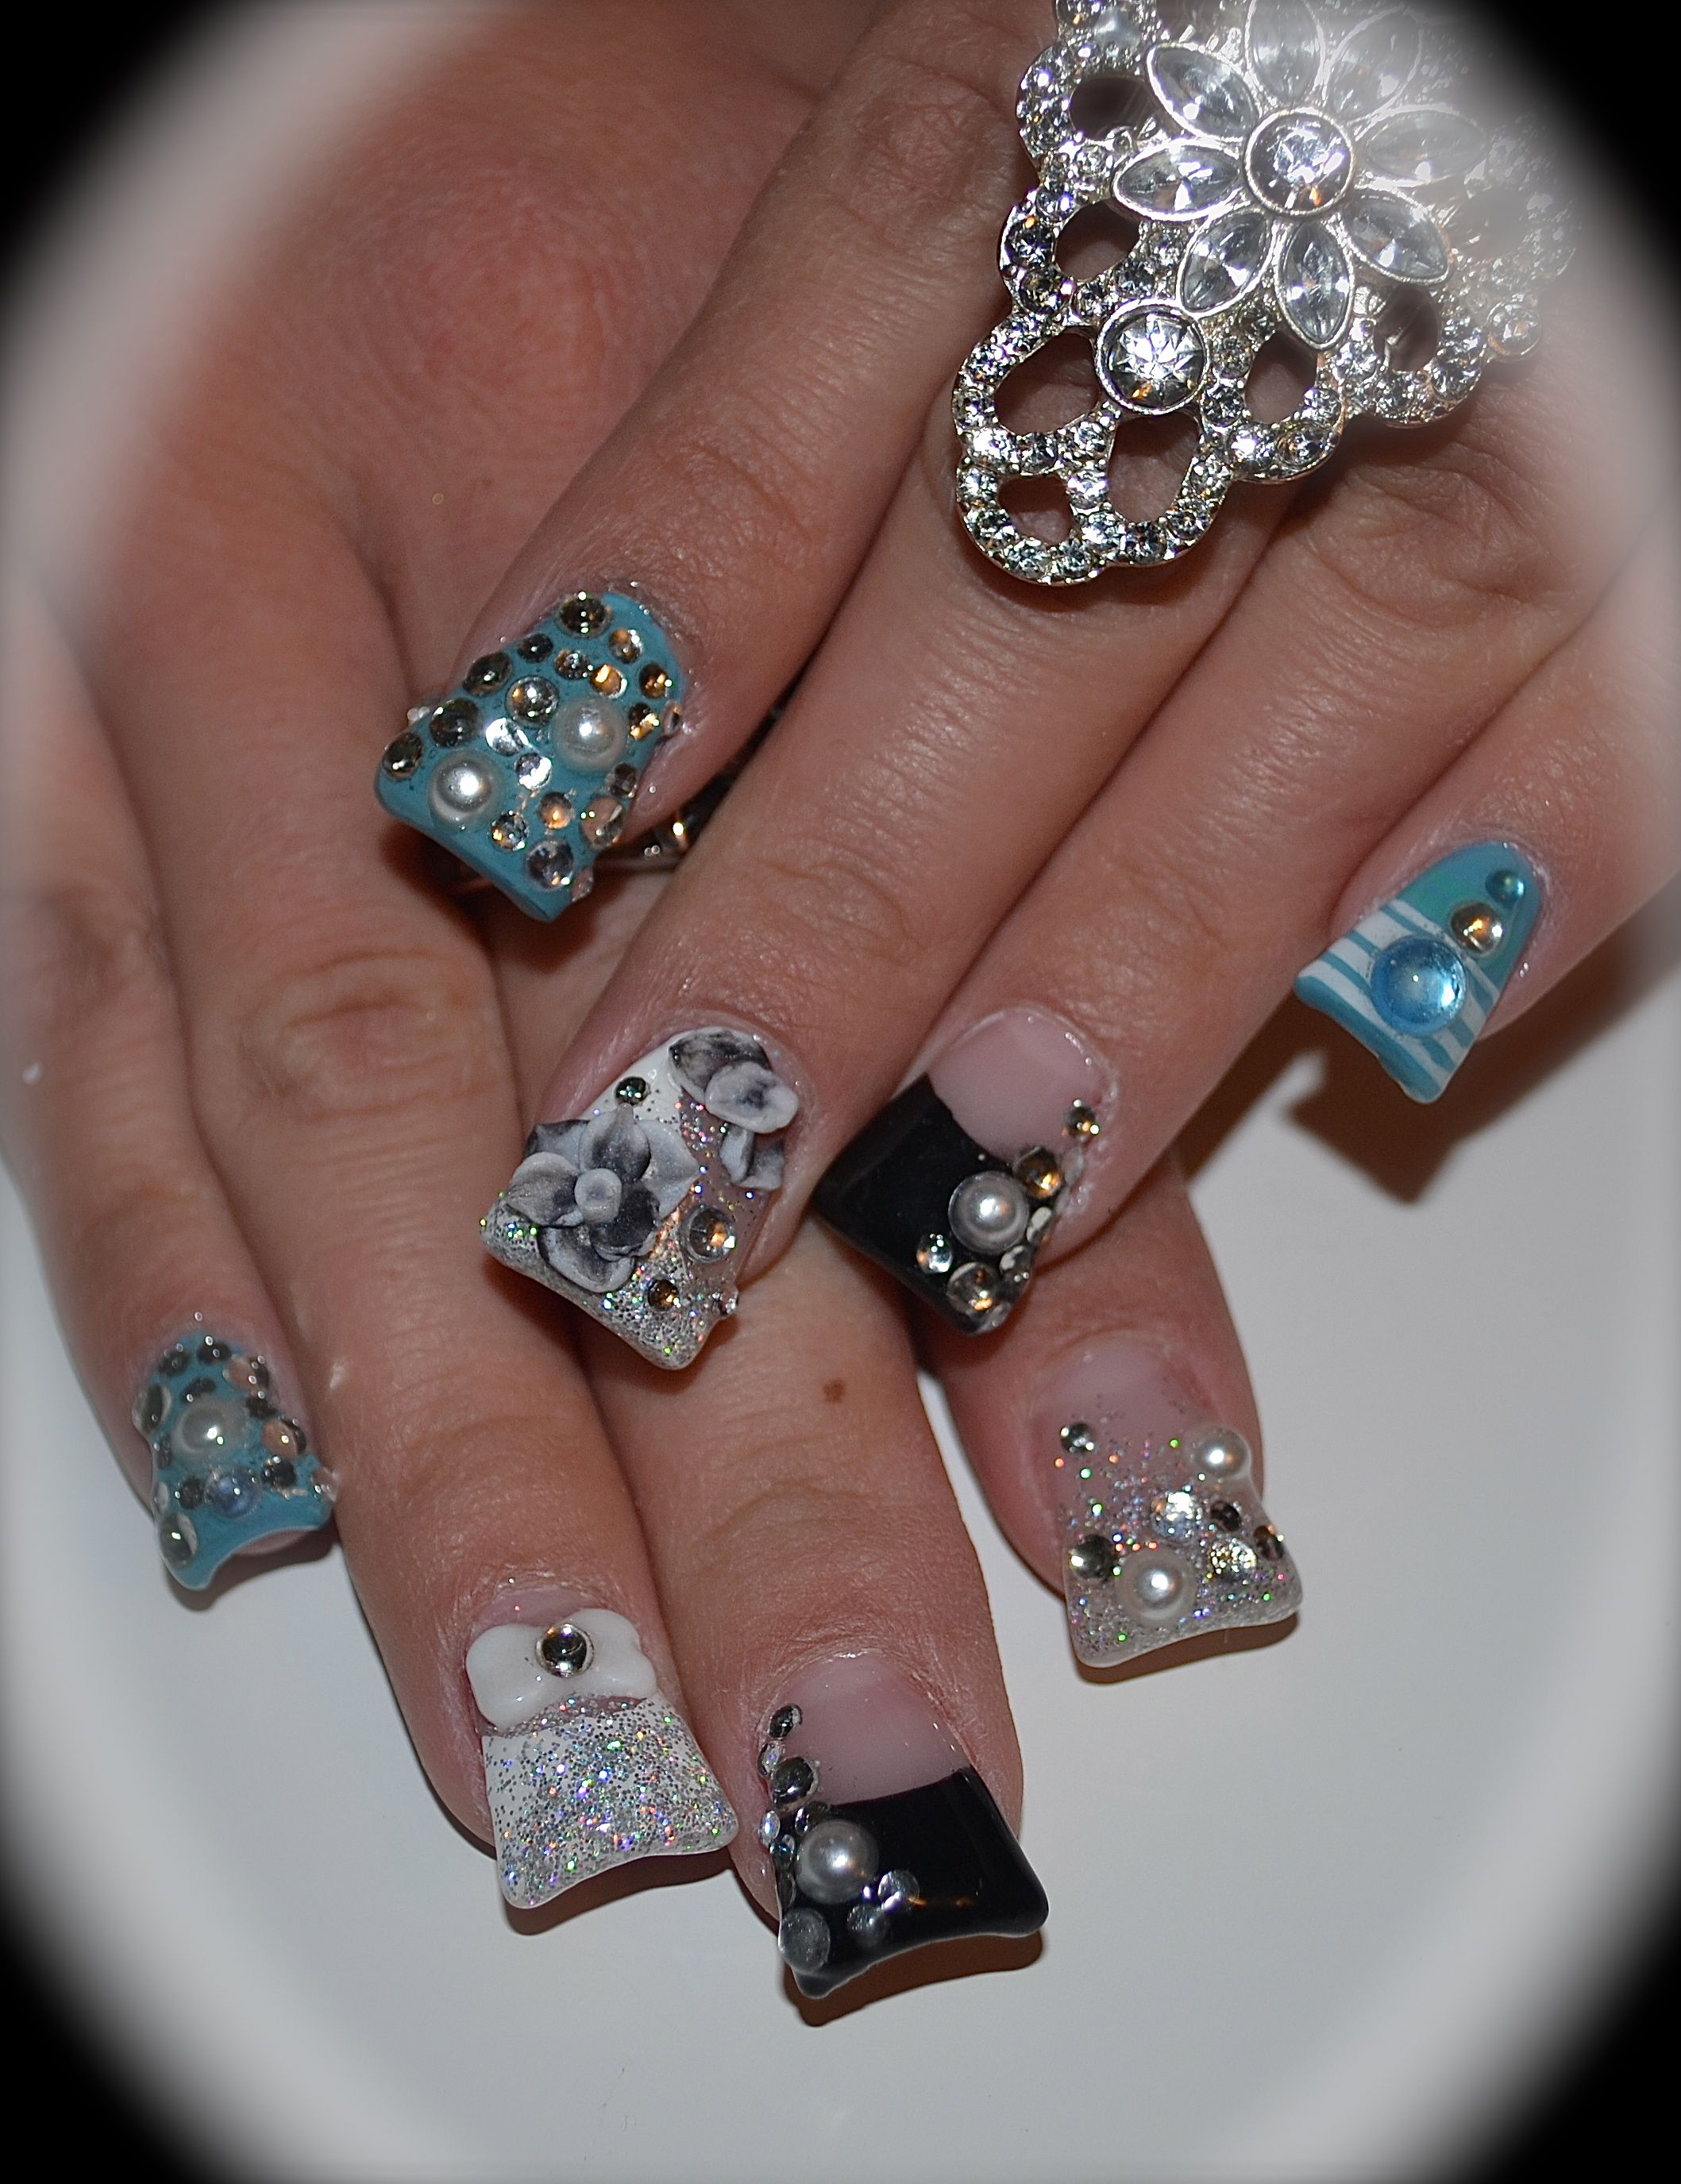 Acrylic nails with blue themed nail designs, including rhinestones ...